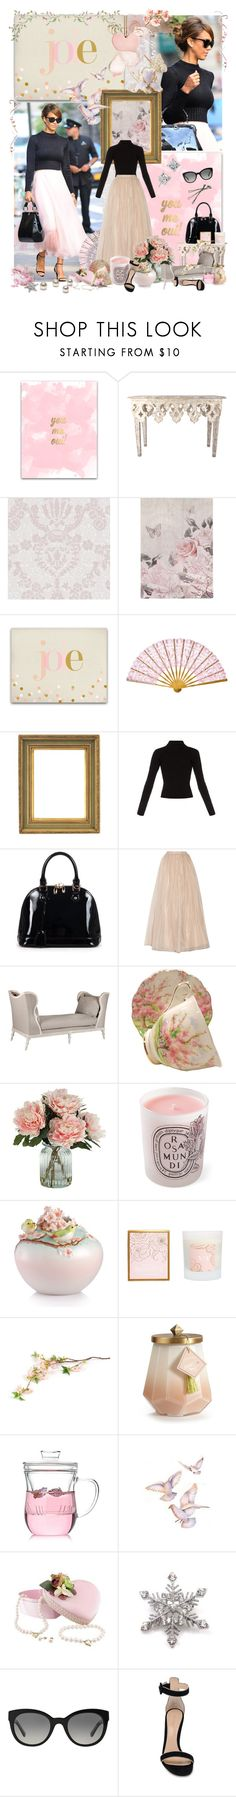 """""""Retro Blooming"""" by claudrine ❤ liked on Polyvore featuring Designers Guild, Ralph Lauren, WALL, Alden, Haider Ackermann, Relaxfeel, Alice + Olivia, Royal Albert, Diptyque and Franz Collection"""